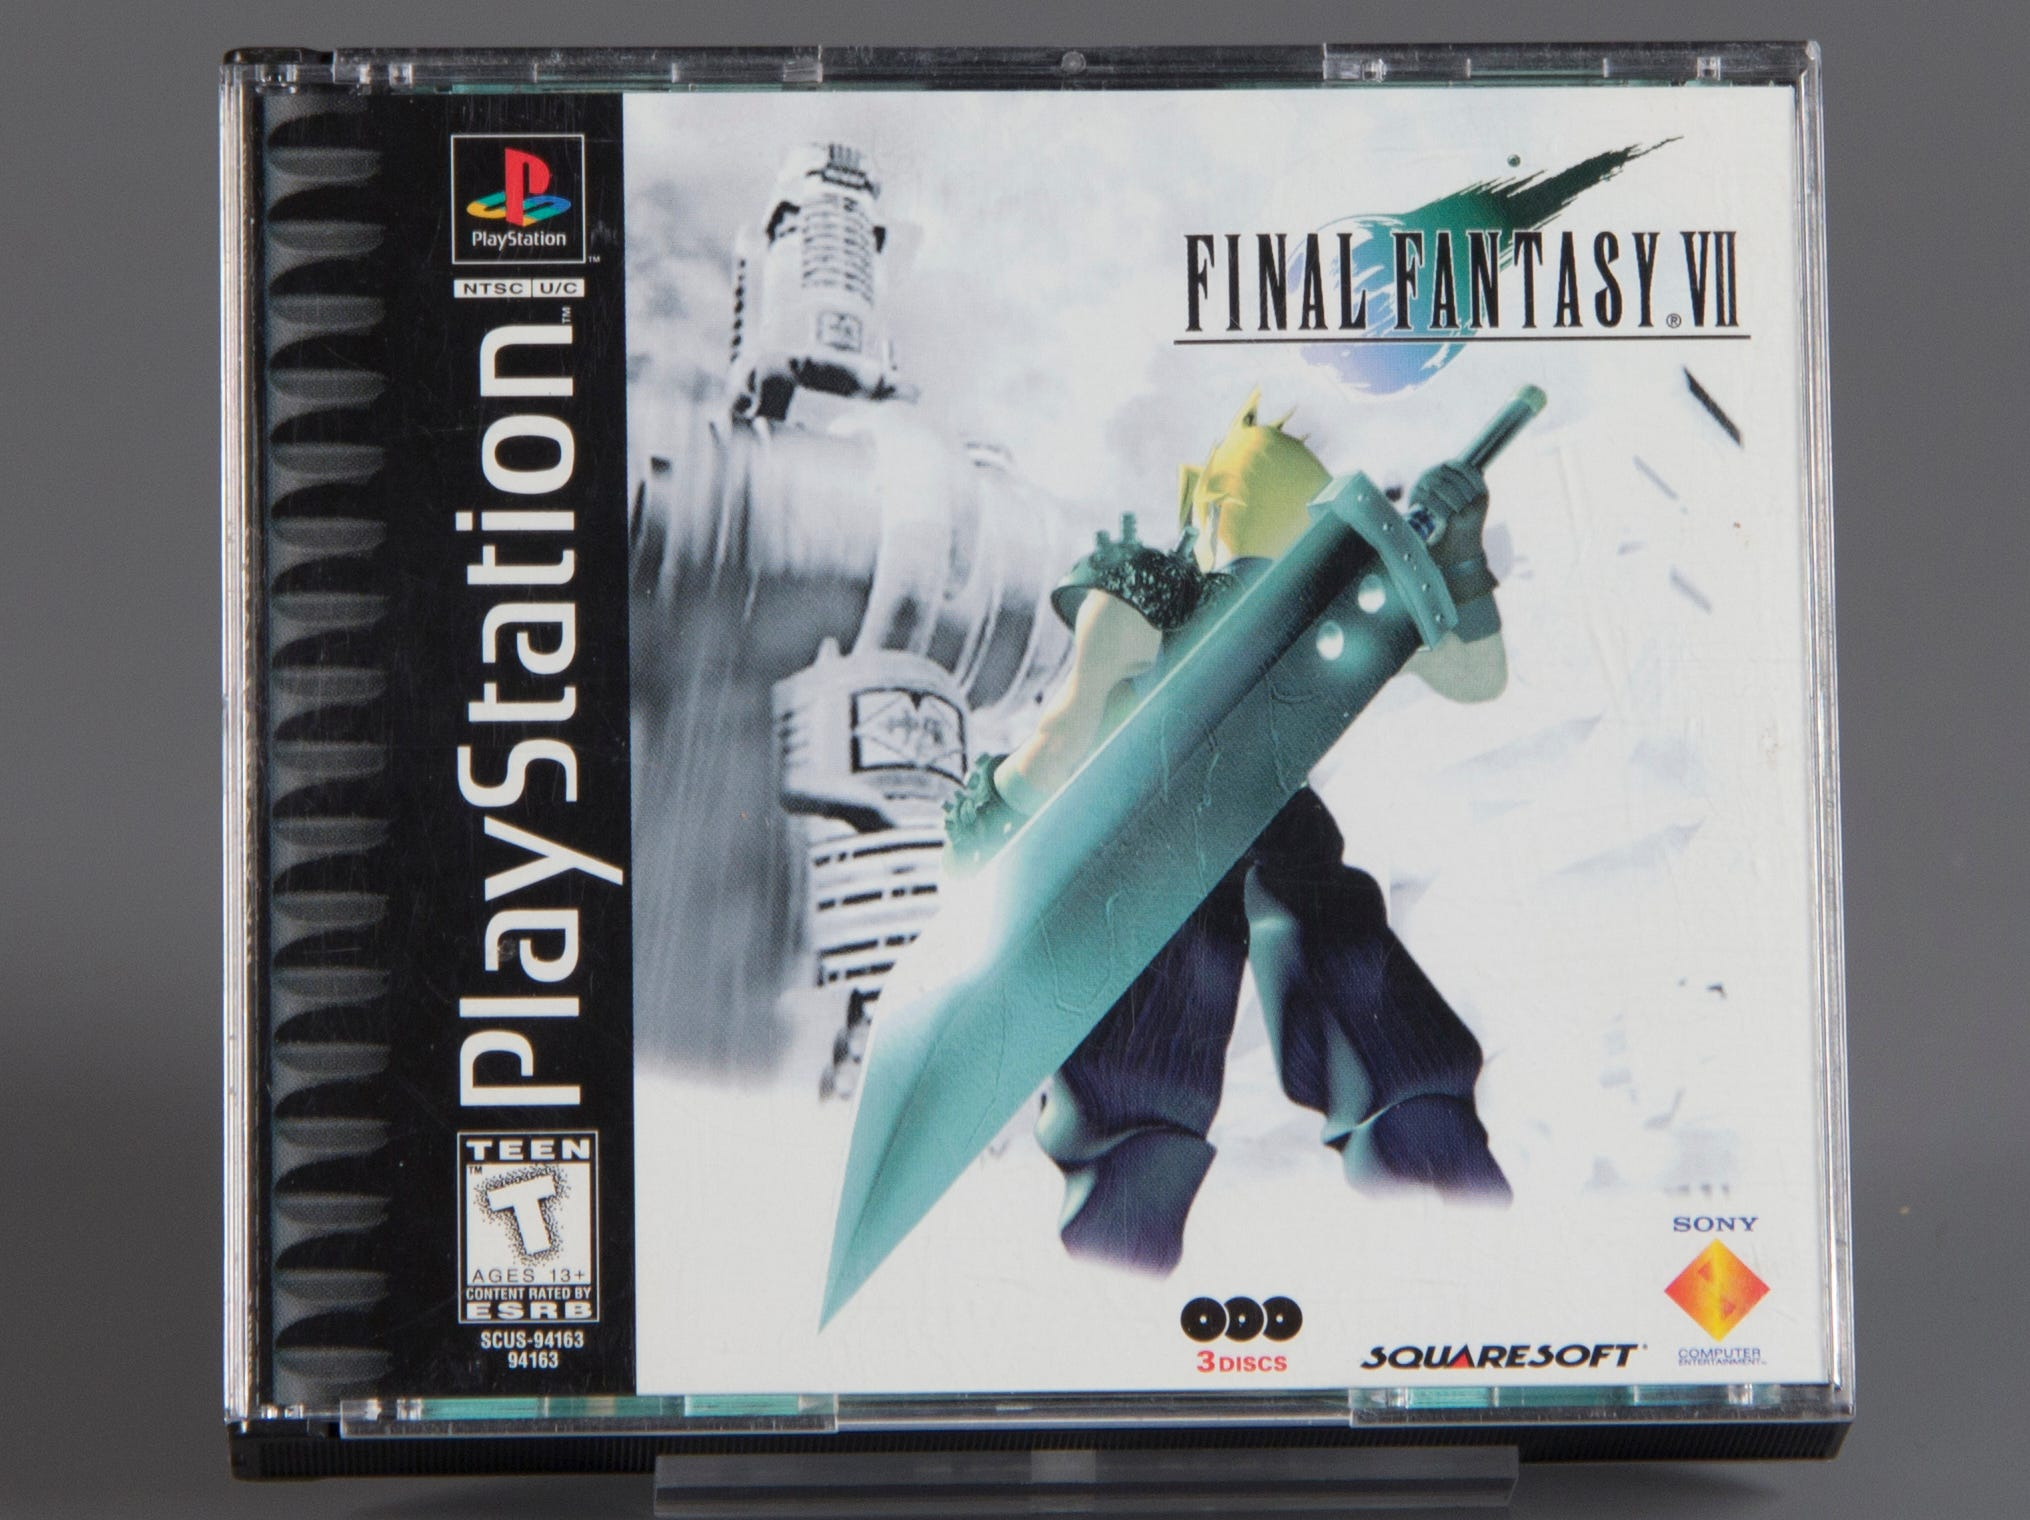 Final Fantasy VII was inducted into the World Video Game Hall of Fame at The Strong National Museum of Play in Rochester, New York in 2018.